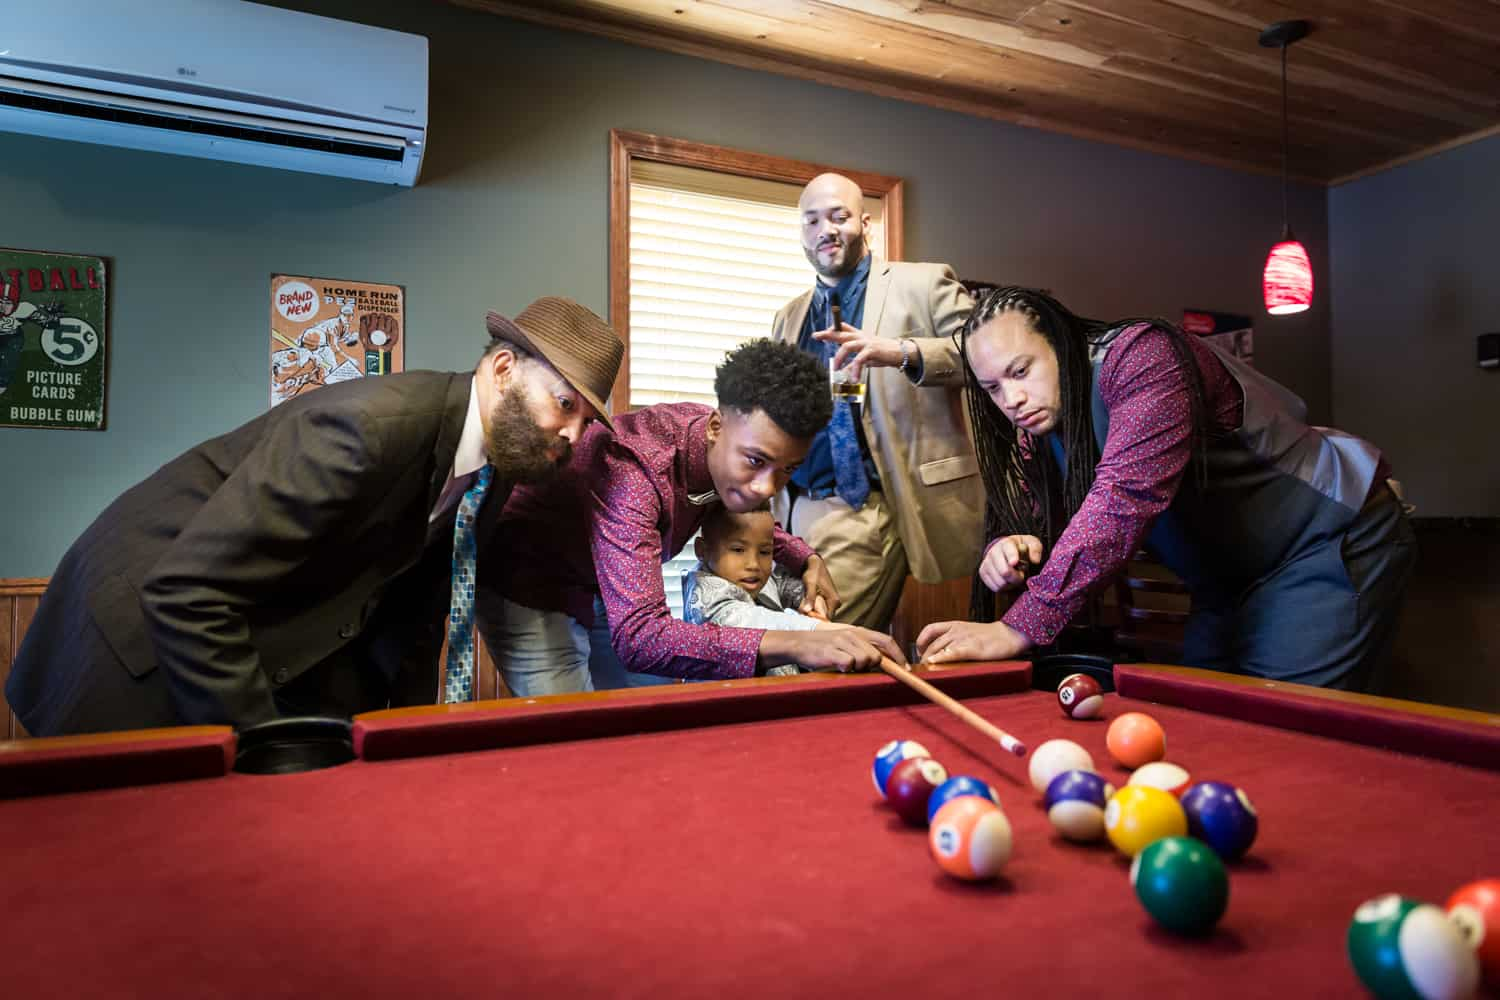 Male family members helping a little boy play pool during a family reunion portrait